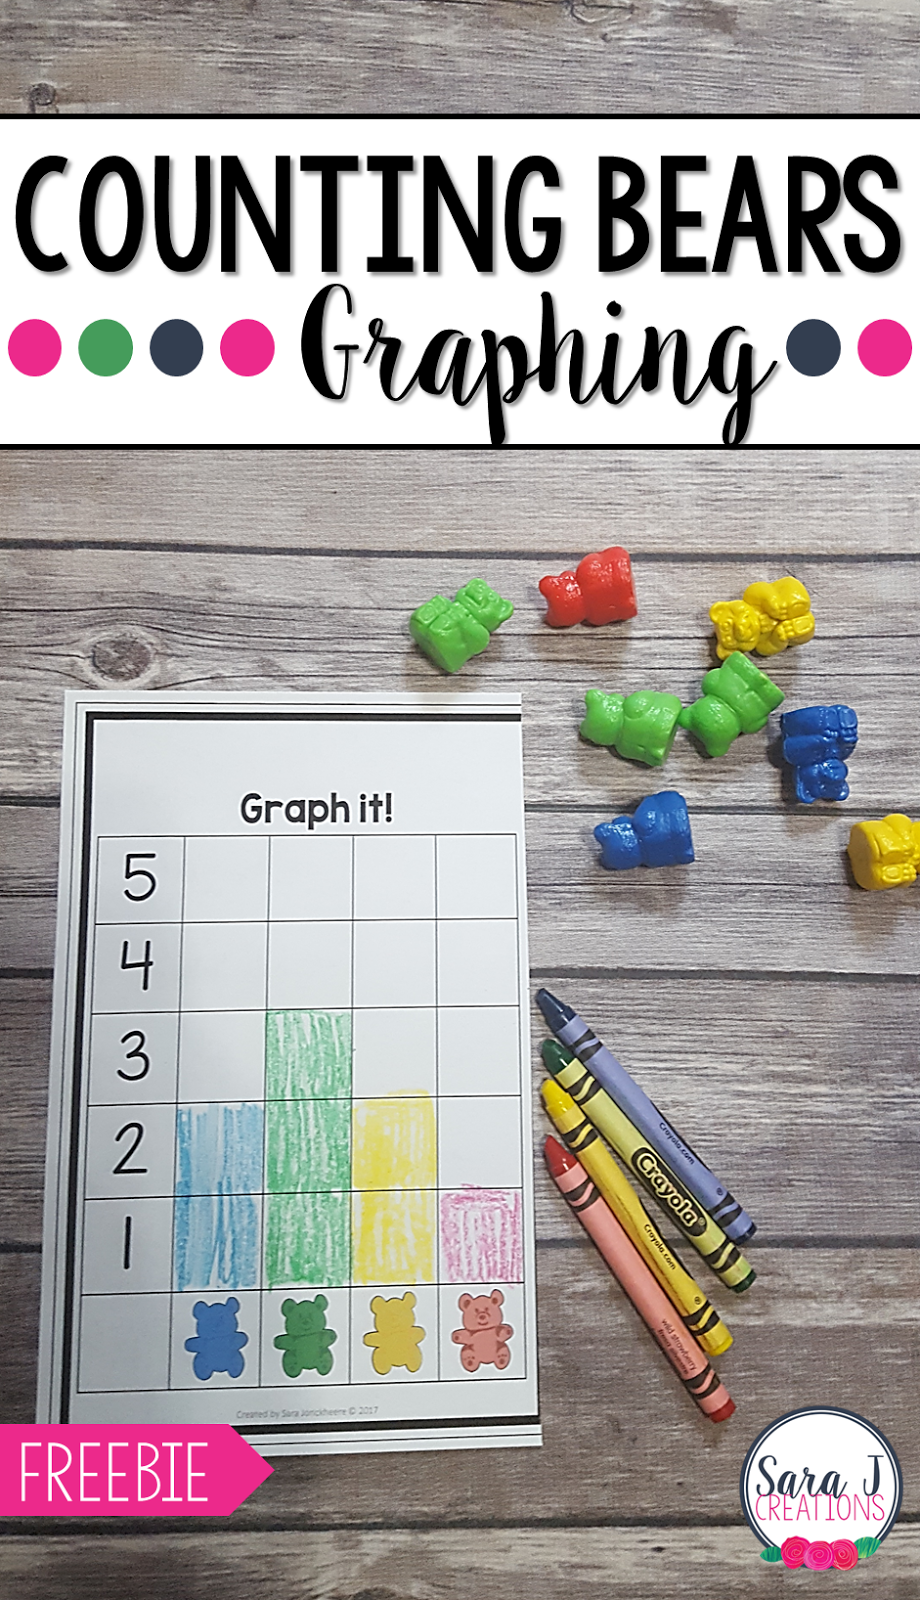 Counting Bear Graphing is a great introduction to counting activity and it is FREE. It is perfect for preschool and kindergarten.